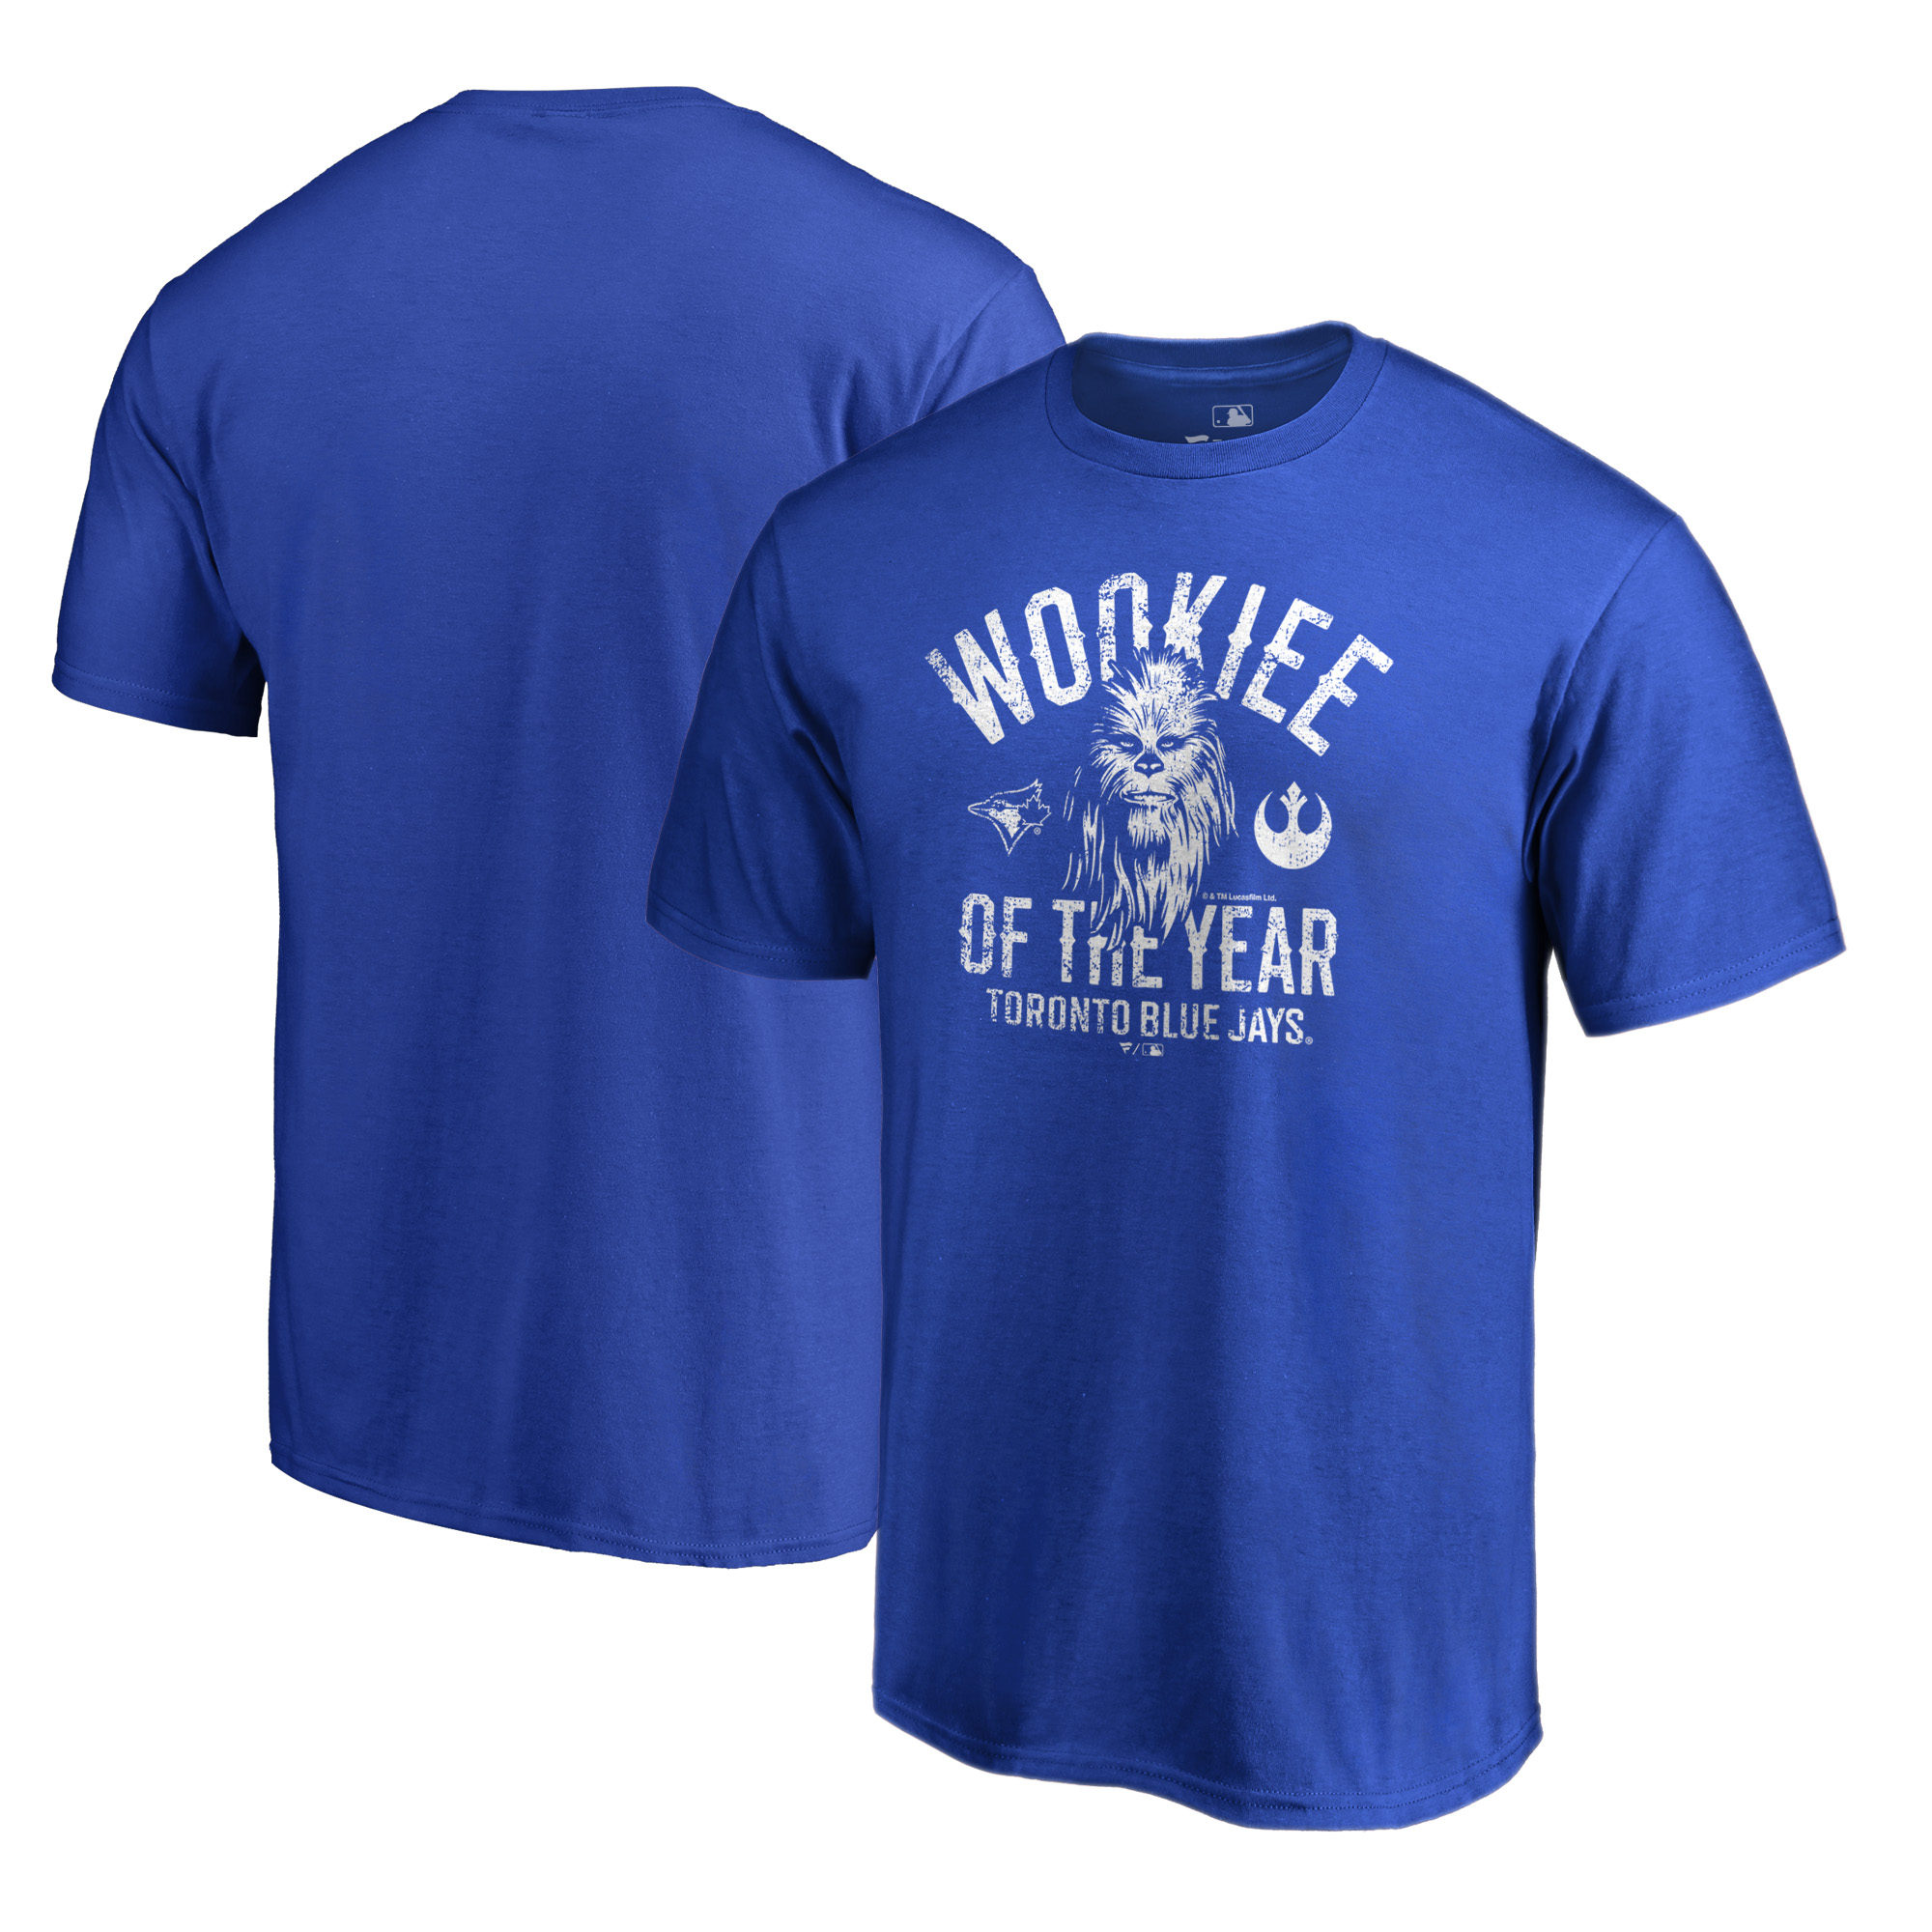 Toronto Blue Jays Fanatics Branded Star Wars Wookiee Of The Year T-Shirt - Royal